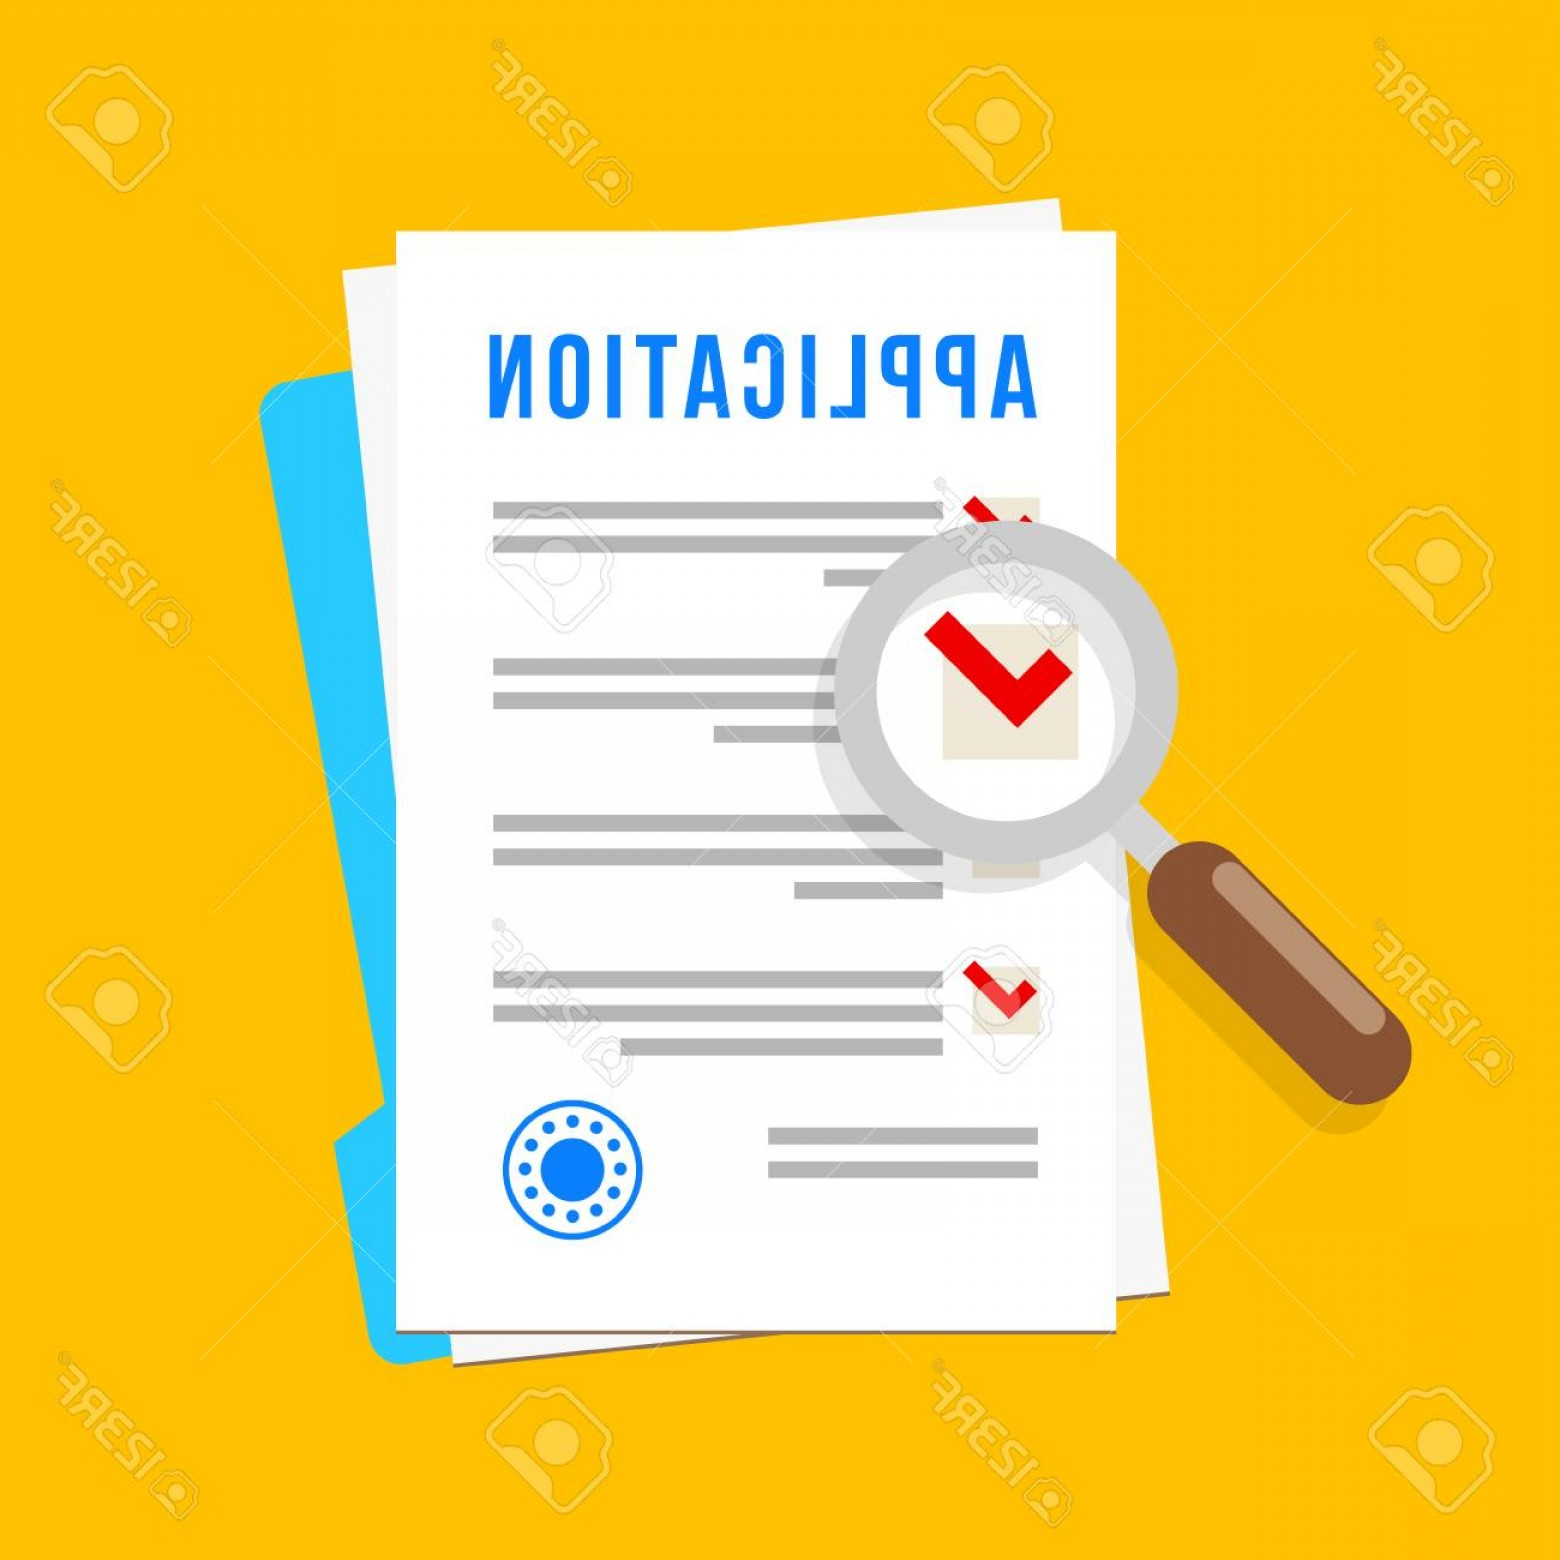 Vector Application Form: Photostock Vector Vector Application Form Documents With Stamp And Magnifying Glass